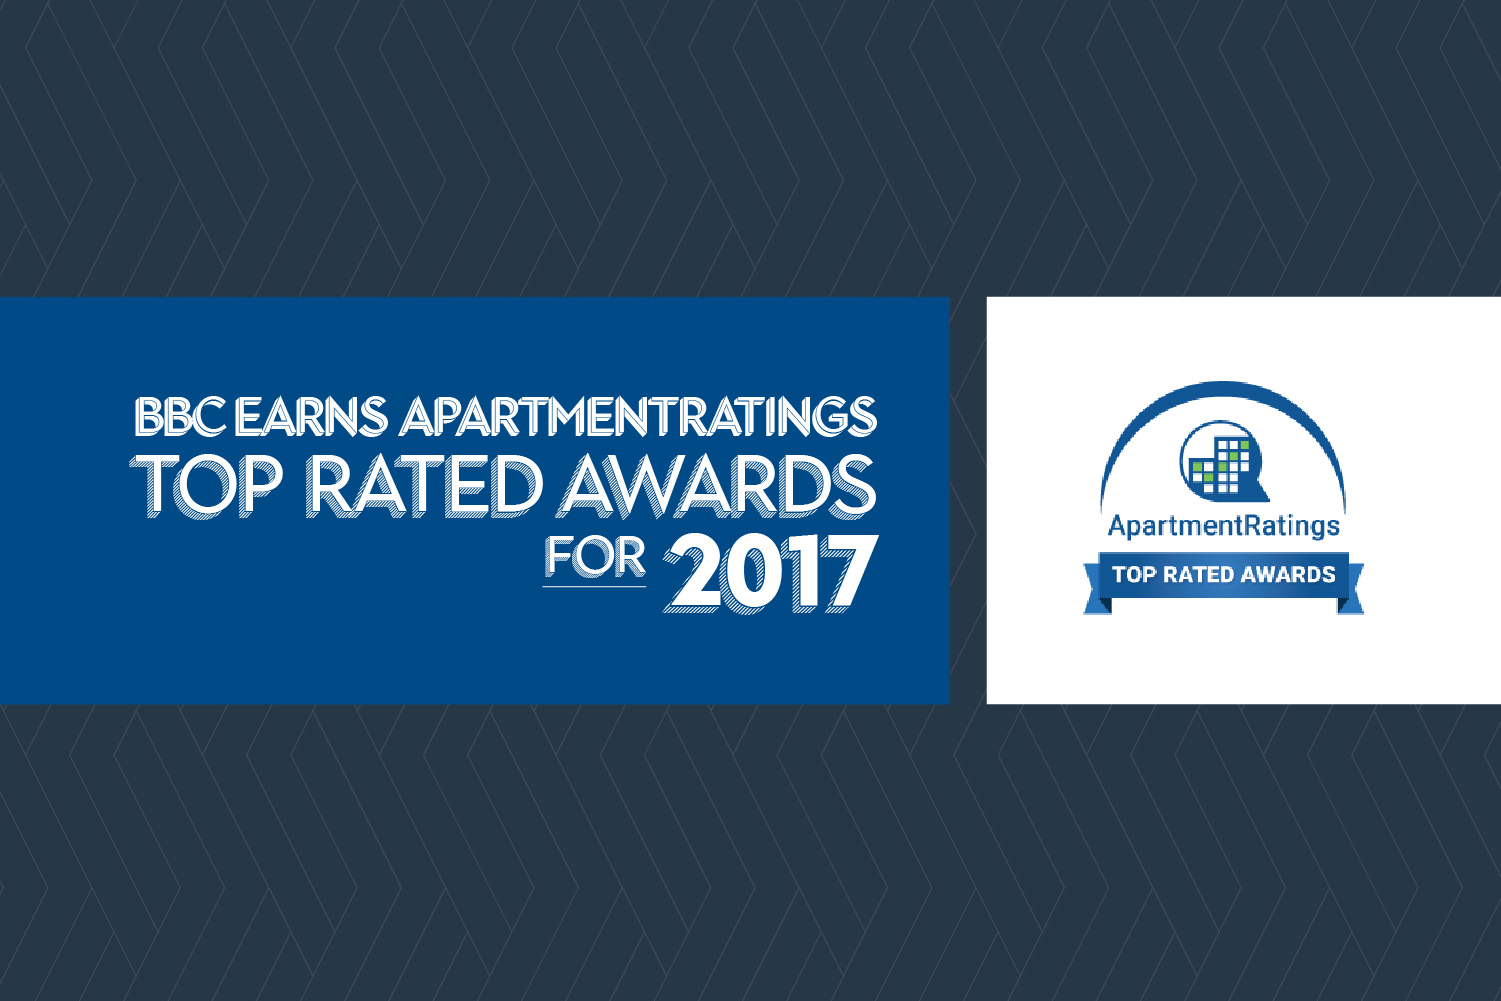 Balfour Beatty Communities Earns Apartment Ratings Top Rated Awards for 2017